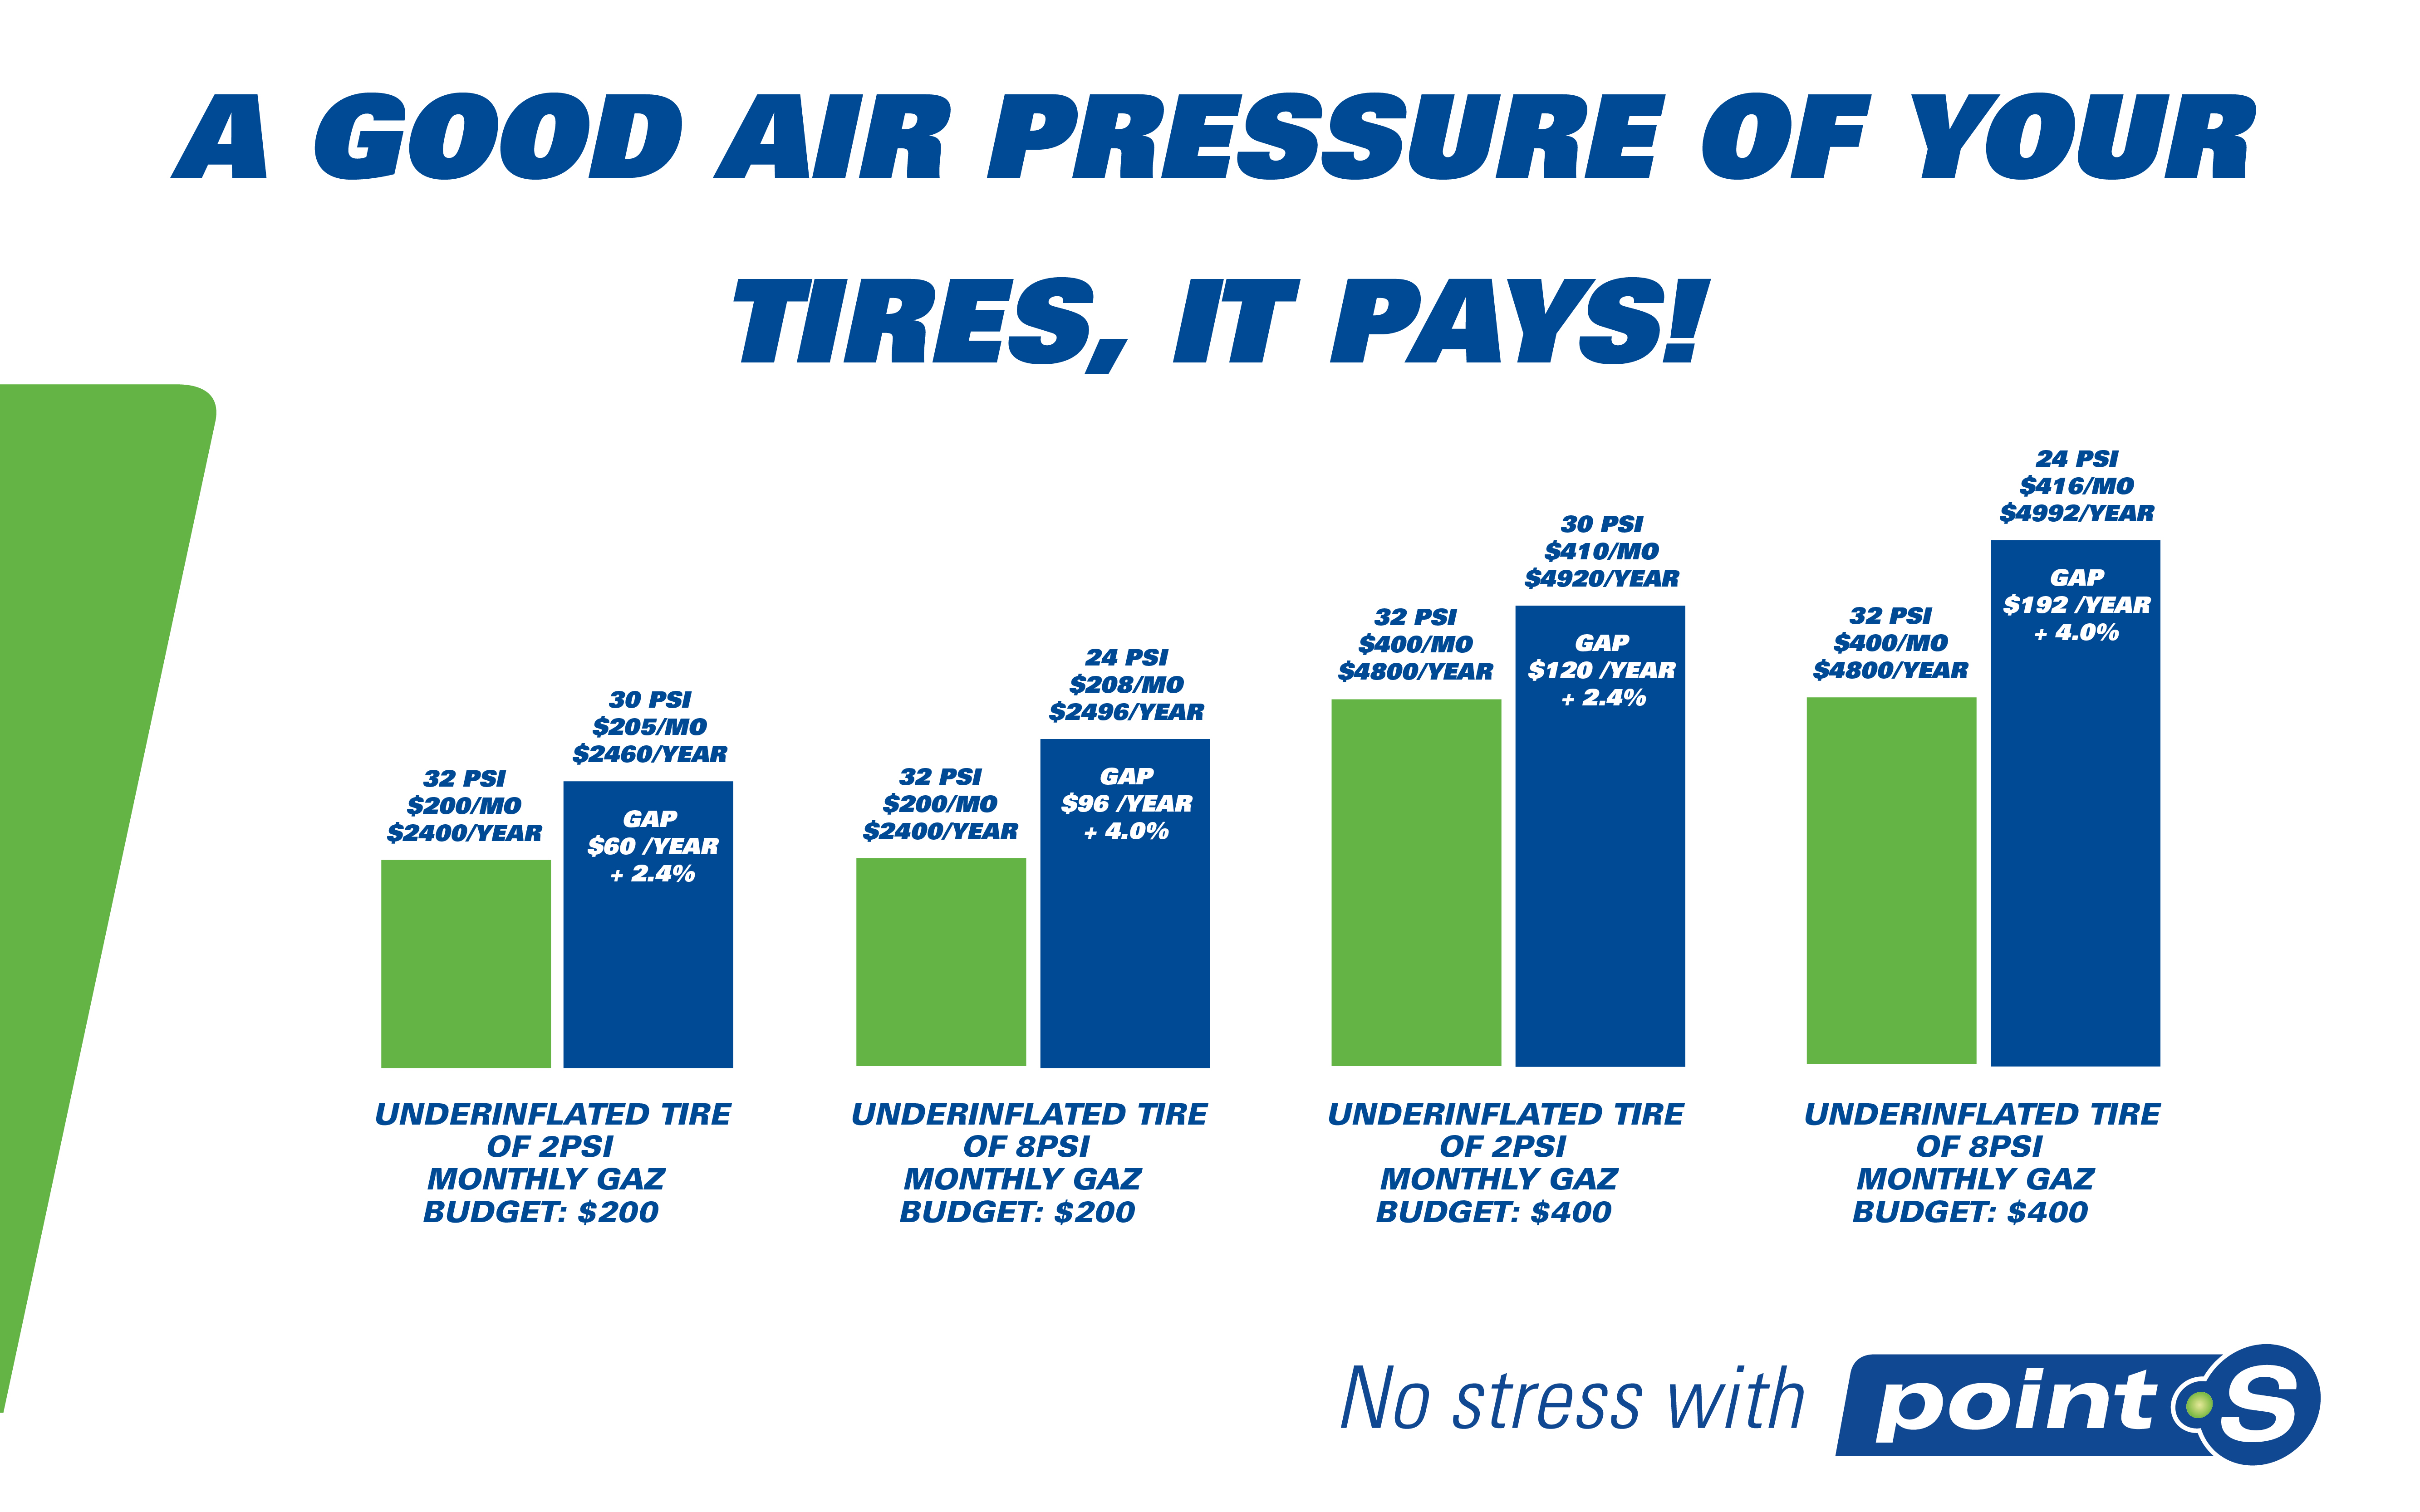 A good air pressure of your tires, it pays!